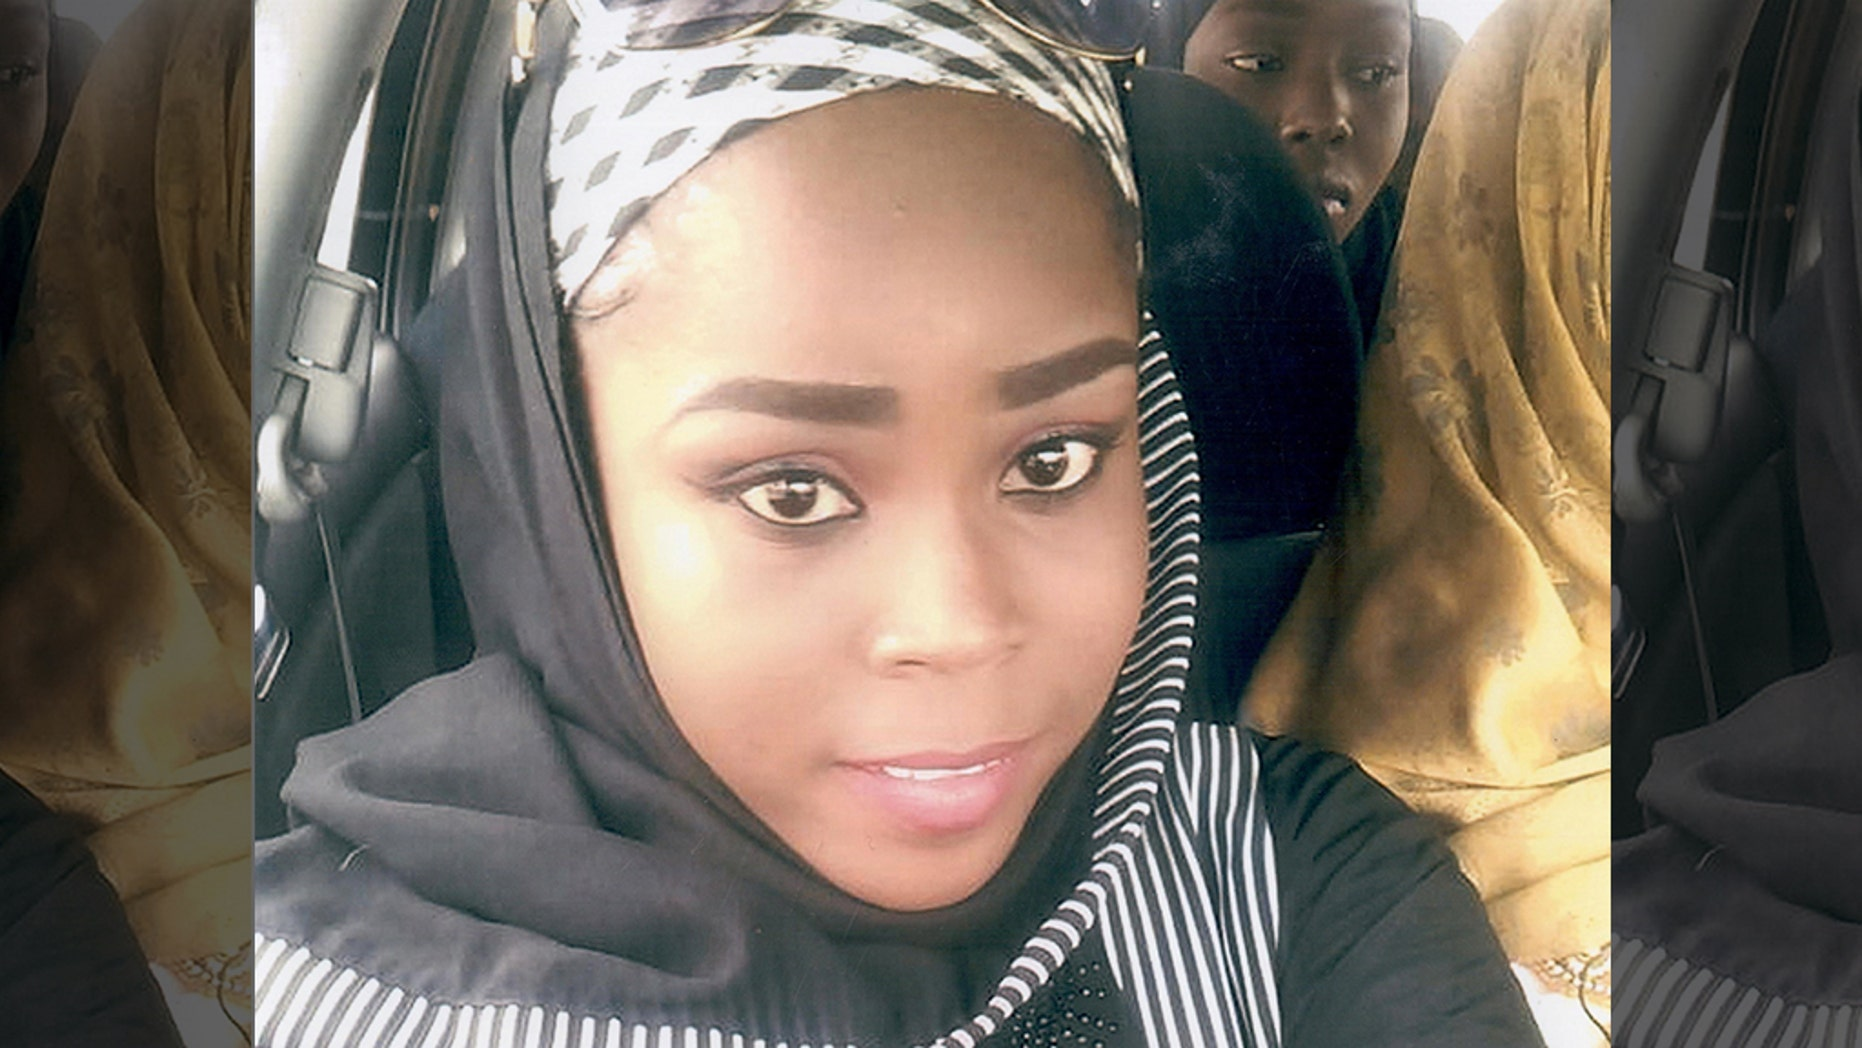 Medical worker Hauwa Mohammed Liman, who was held hostage by Islamic State in Nigeria since March, is pictured in this handout photograph.